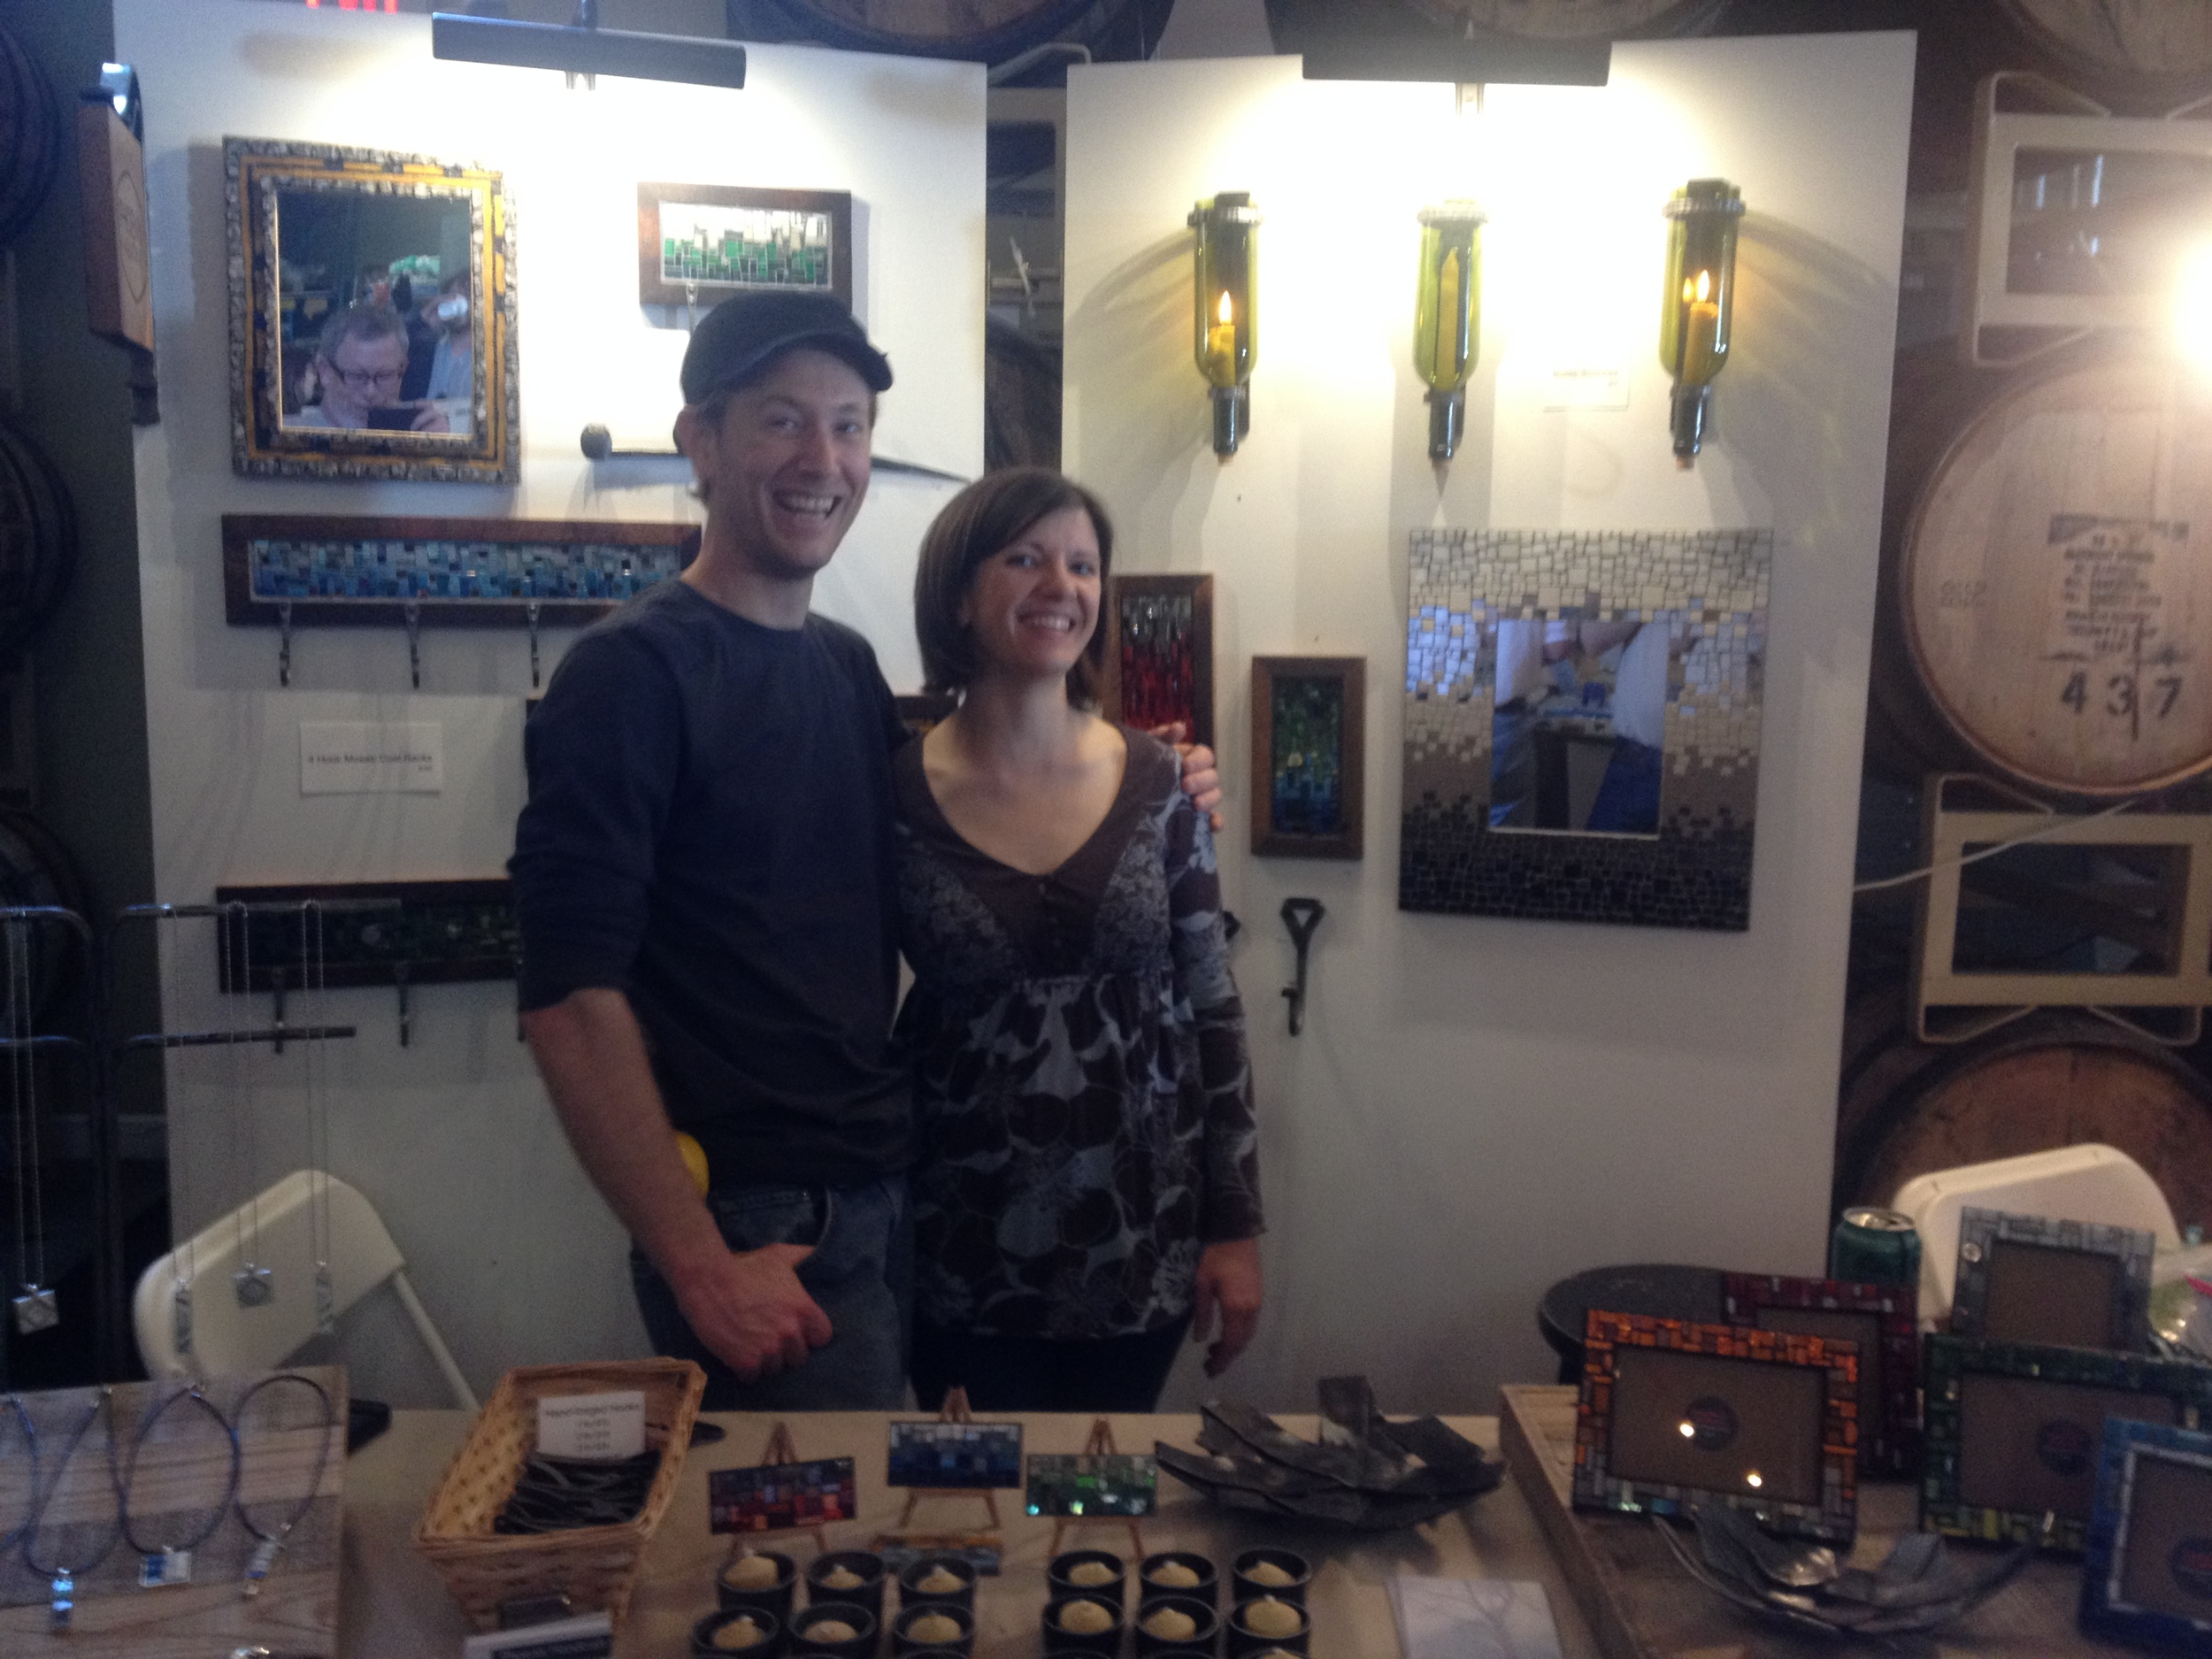 Our booth neighbor from  Zou Zou's Basement  snapped this shot of the two of us in our booth at  Spring Bada Bing . We had lots of fun at this busy craft show and look forward to more shows with  Richmond Craft Mafia .